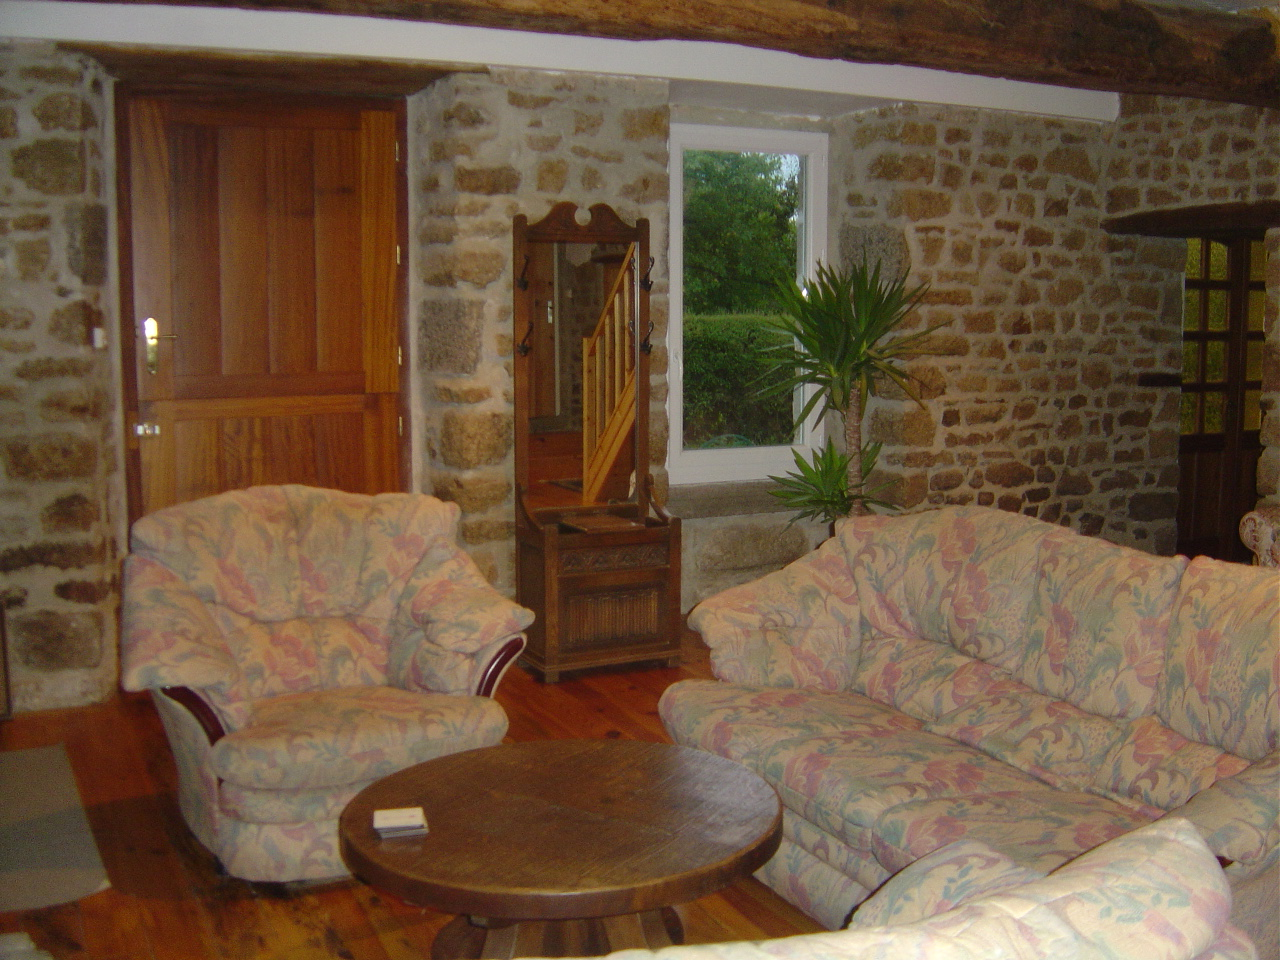 9 La Beauficerie B&B